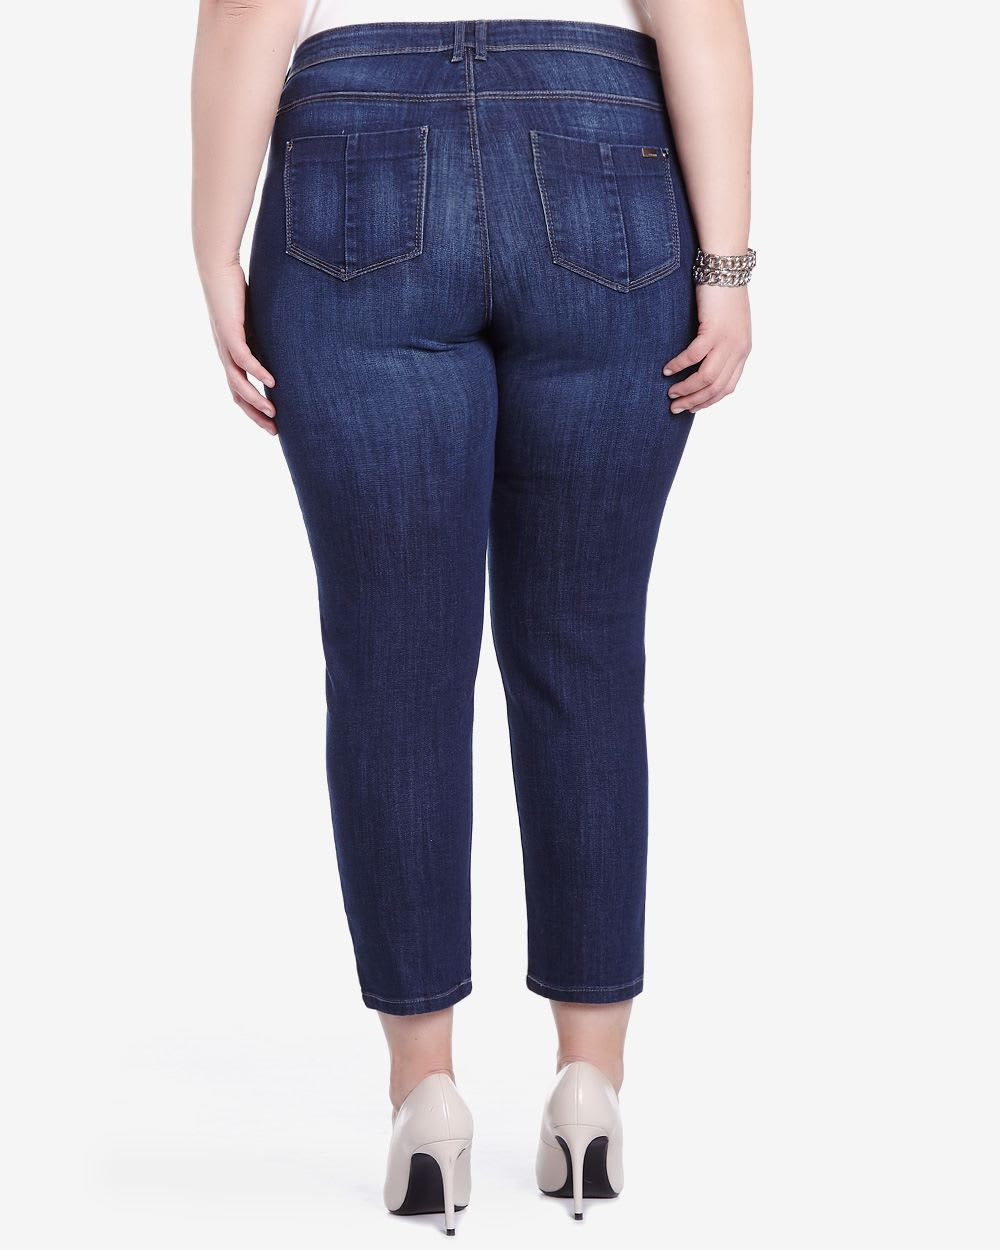 ★ Sejour Straight Leg Ankle Pants (Plus Size) @ Lowest Price Womens Suits Amp Separates, Save % Off Get Free No-Hassle Day Returns [SEJOUR STRAIGHT LEG ANKLE PANTS (PLUS SIZE)] Shop online for shoes, clothing, Makeup, Dresses and more from top brands.